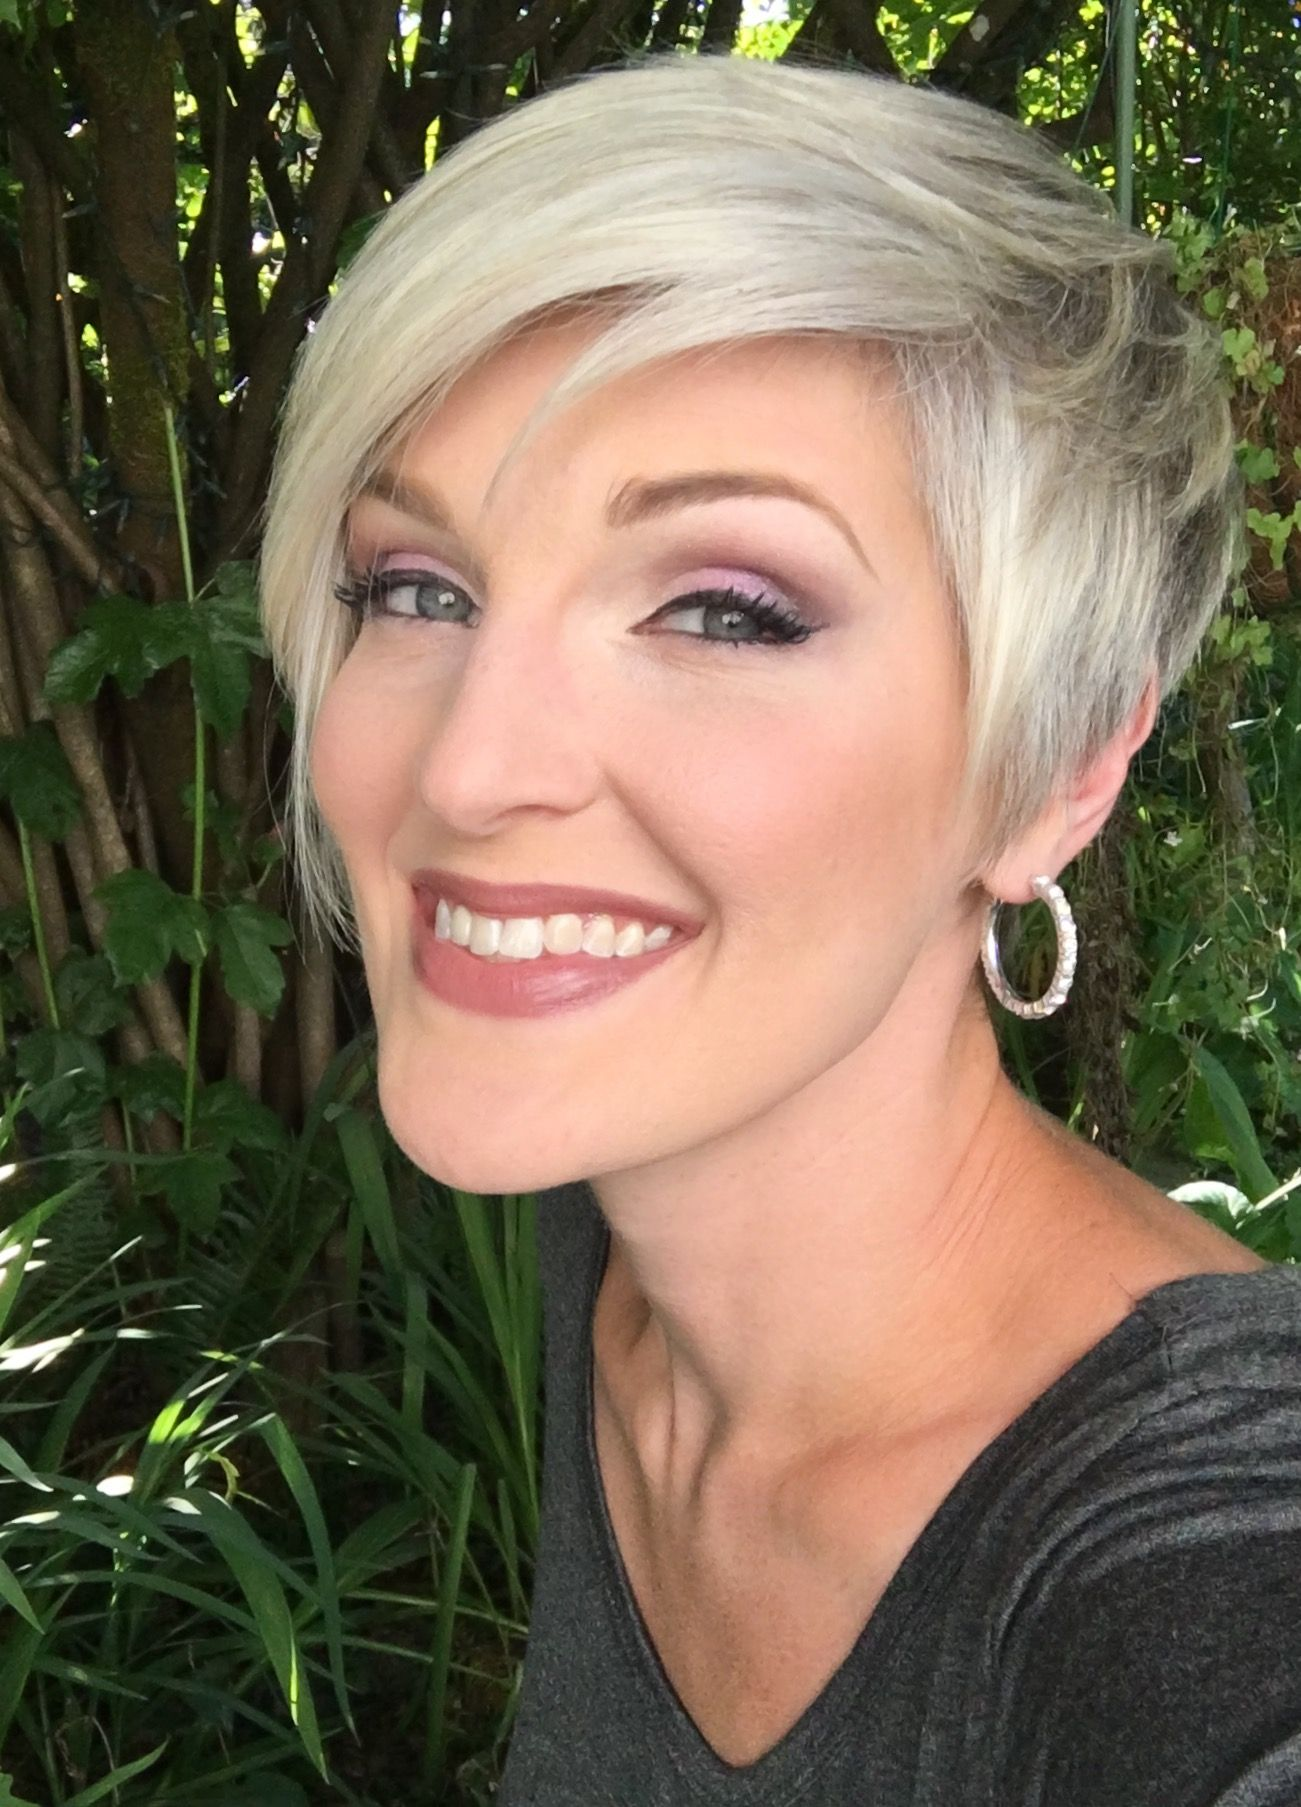 Platinum Blonde Pixie, Short Hair, Gray Hair, Short Cut | visage ...